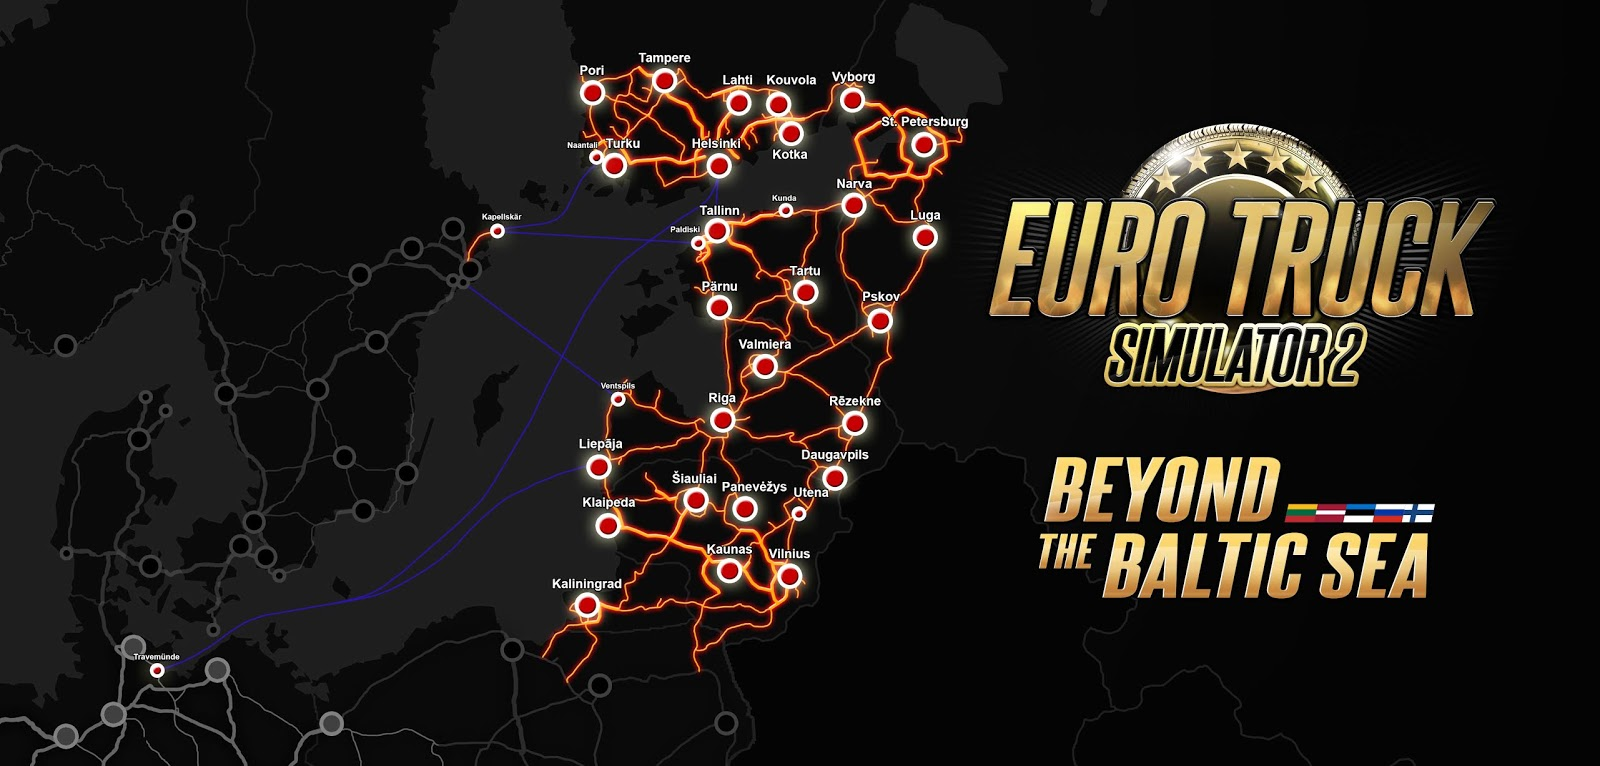 ETS2 'Beyond the Baltic Sea' DLC Launches November 29th